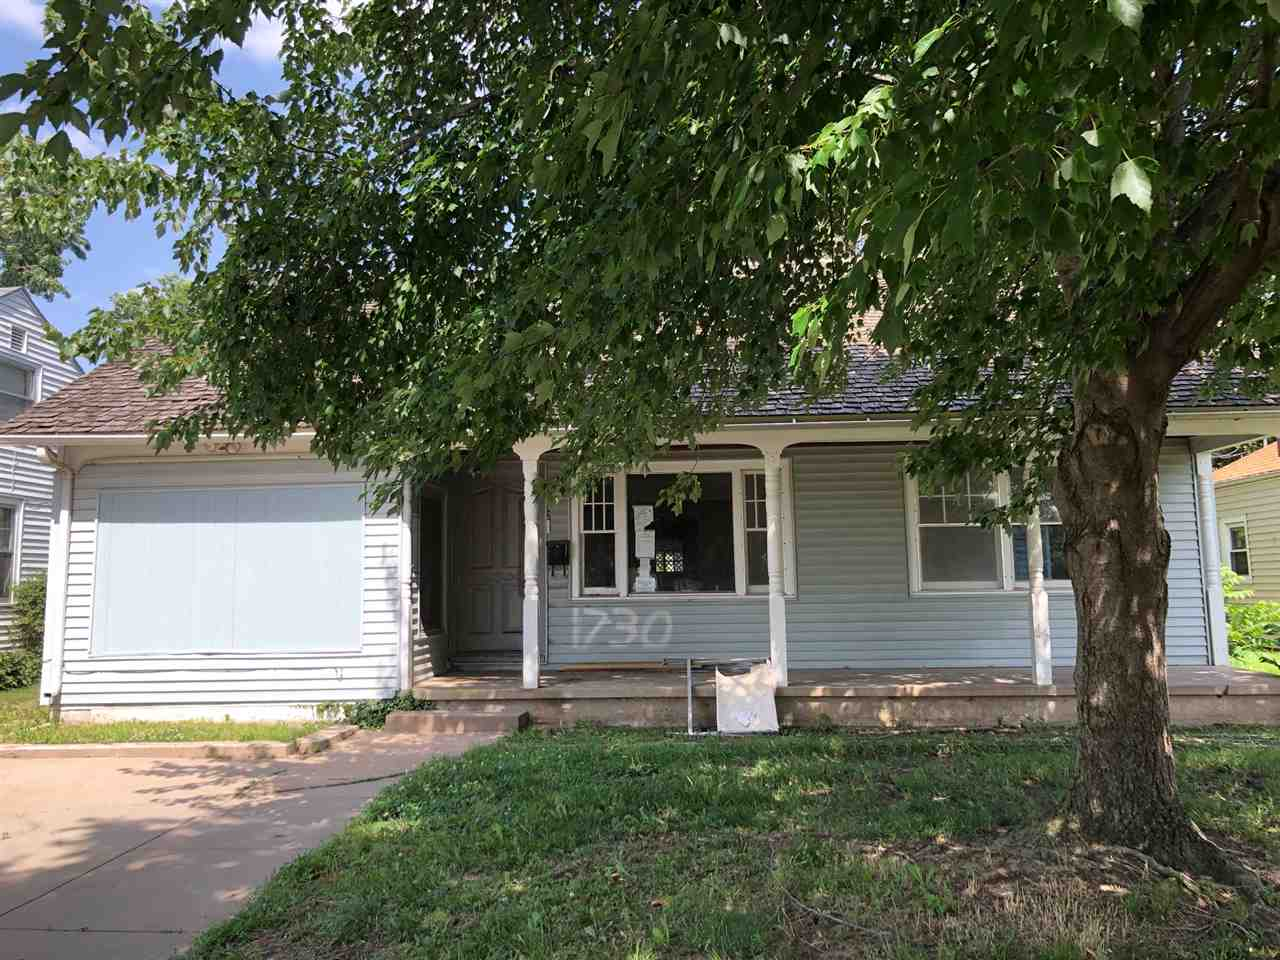 Home is a investment flip property in mid completion.  Carpet, paint, and kitchen updates would make this home rent or owner occupancy ready.  Opportunity to build instant equity, call today for a private showing.